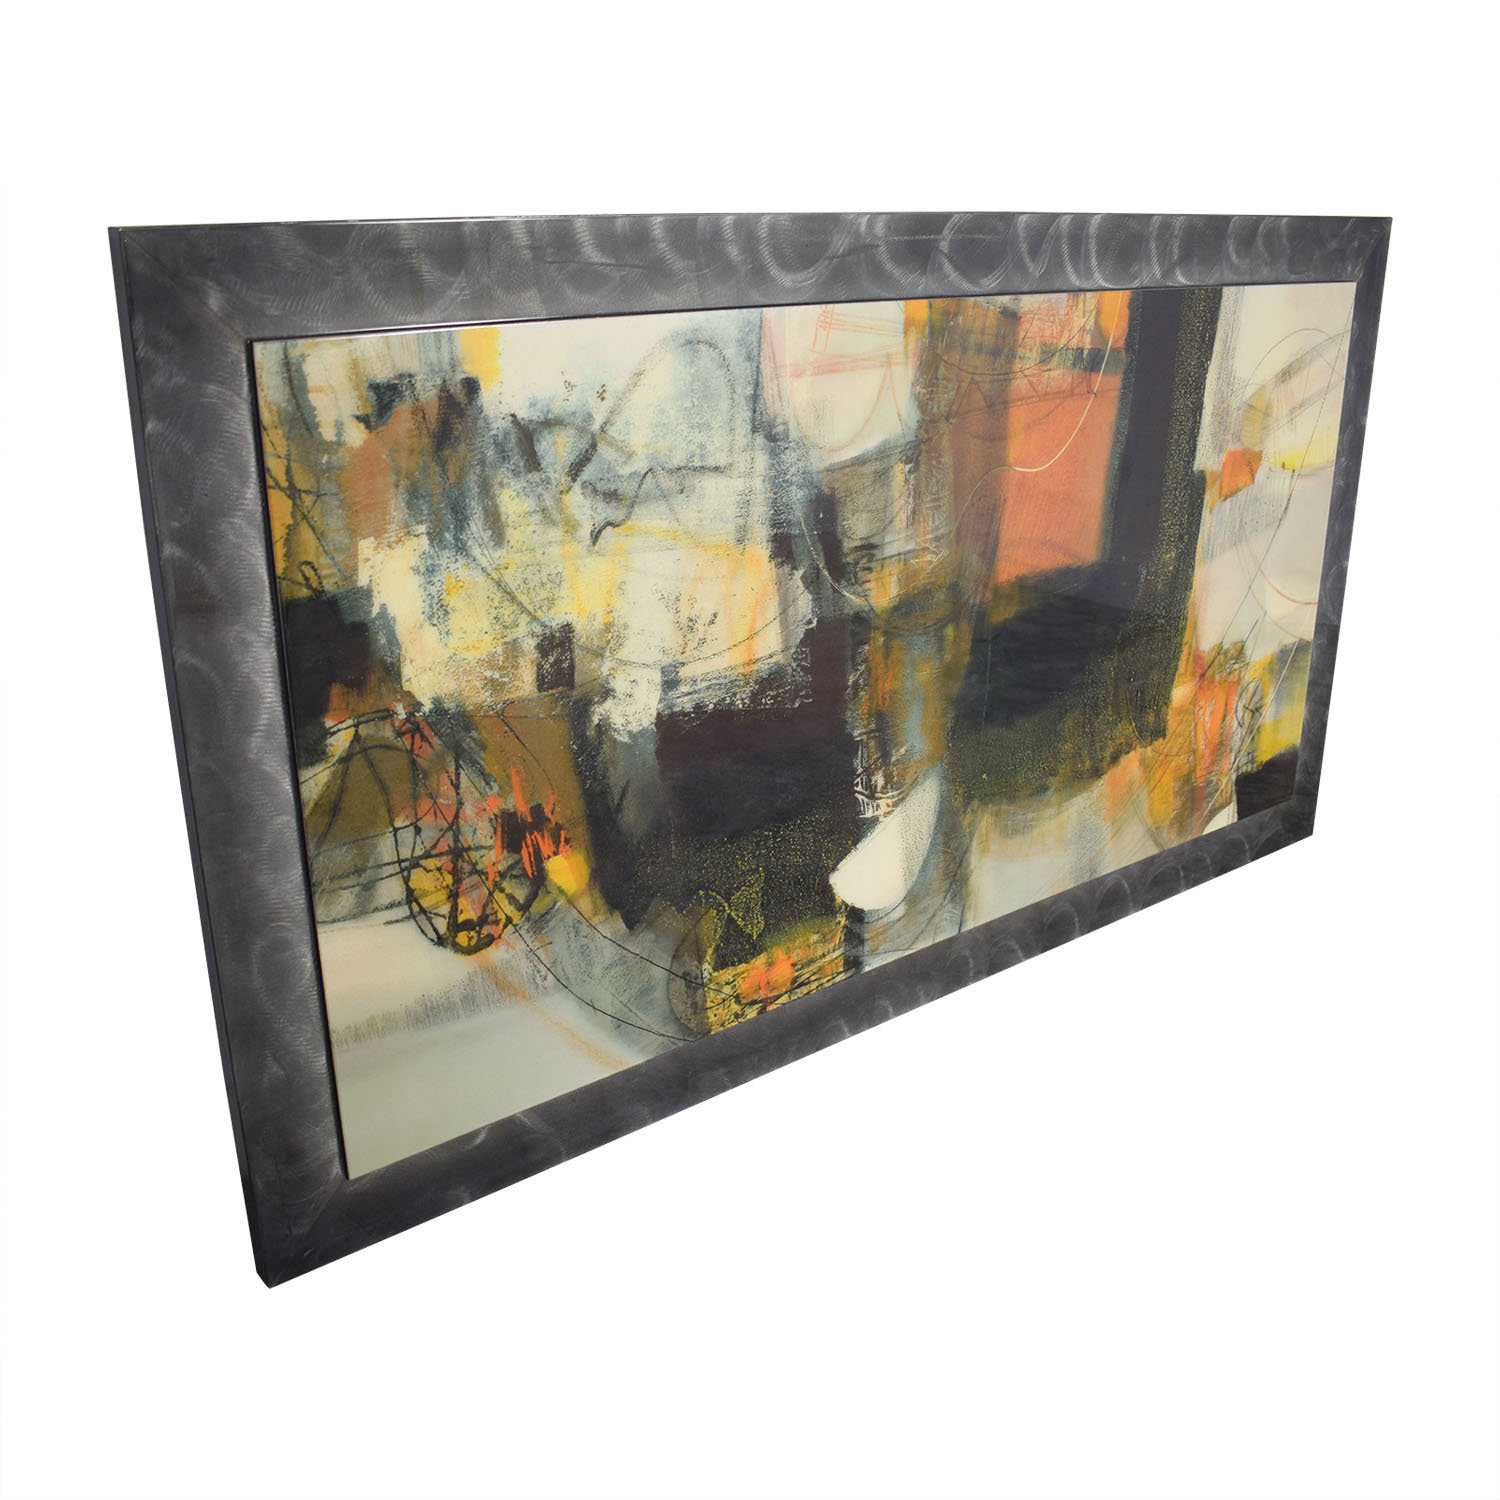 Multi-Colored Art Work in Pewter Frame